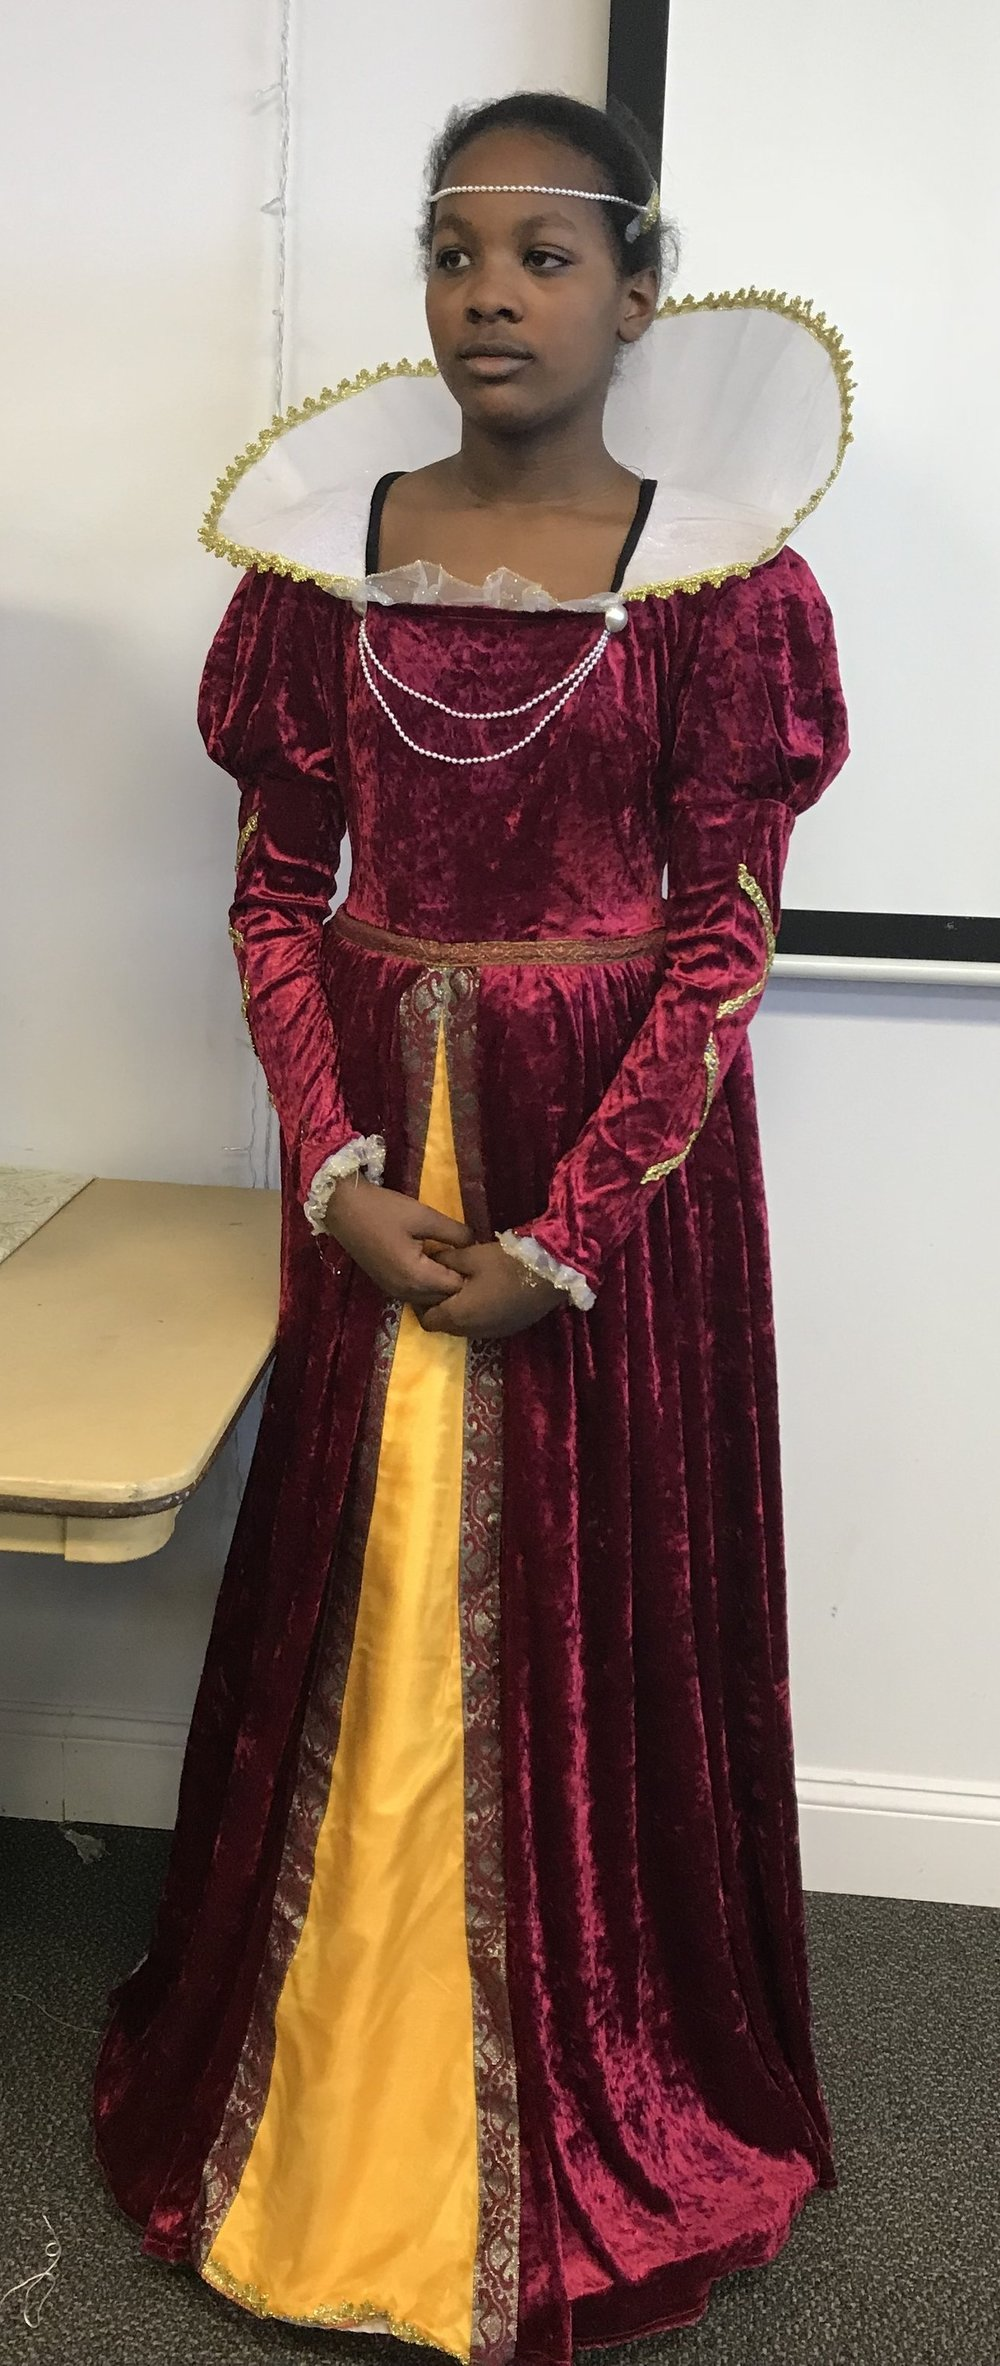 Brianna Small received 1st place for her presentation as Queen Elizabeth I.